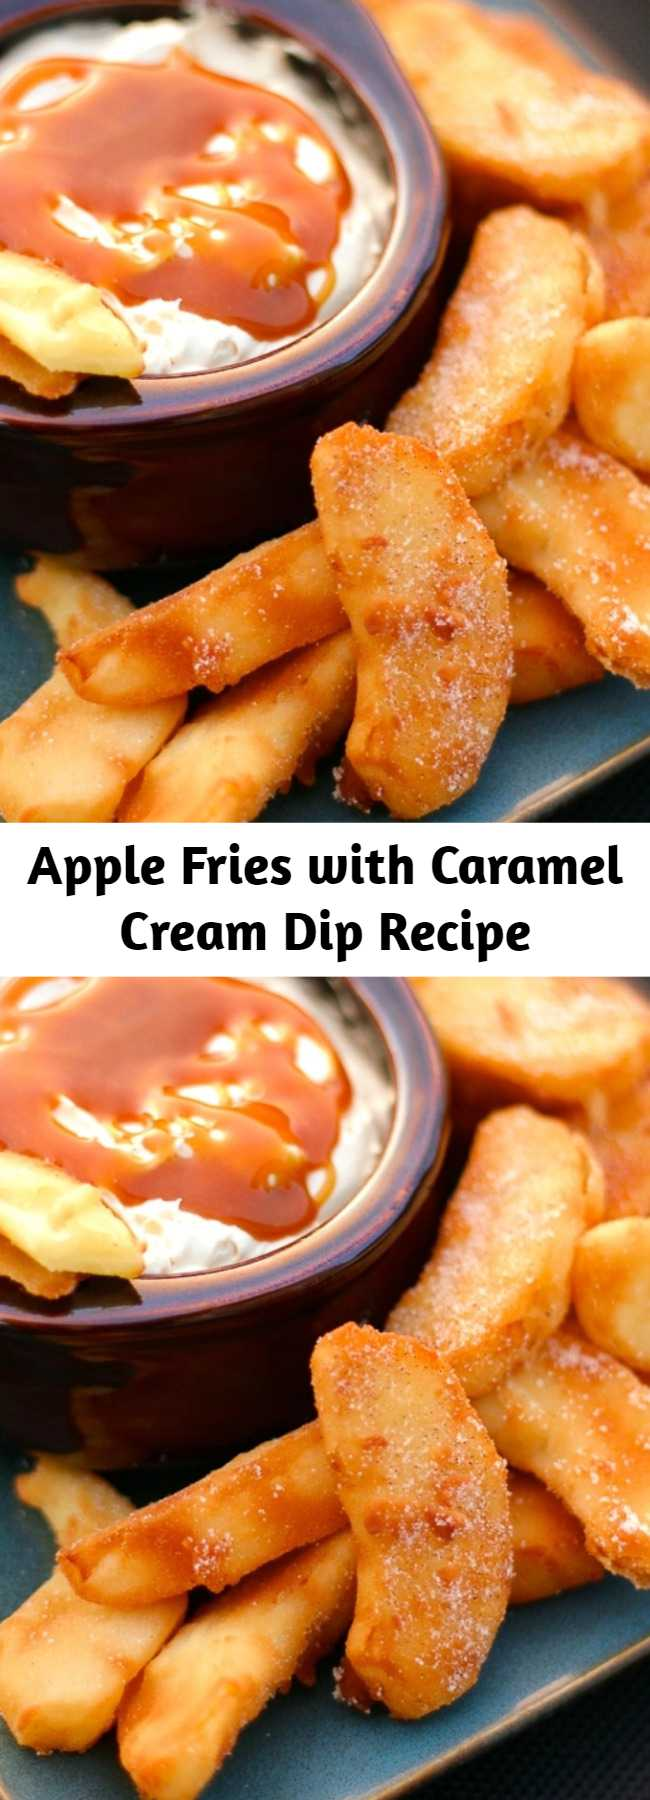 Apple Fries with Caramel Cream Dip Recipe - These Apple Fries with Caramel Cream Dip are the perfect warm dessert for a crisp fall evening. It made our house smell like apple pie. Crisp apple wedges are lightly battered and fried in a pan, then sprinkled with a cinnamon-sugar mix. What really sets these fried apples apart is the dipping sauce. You'll love this creamy, caramel-infused dip.